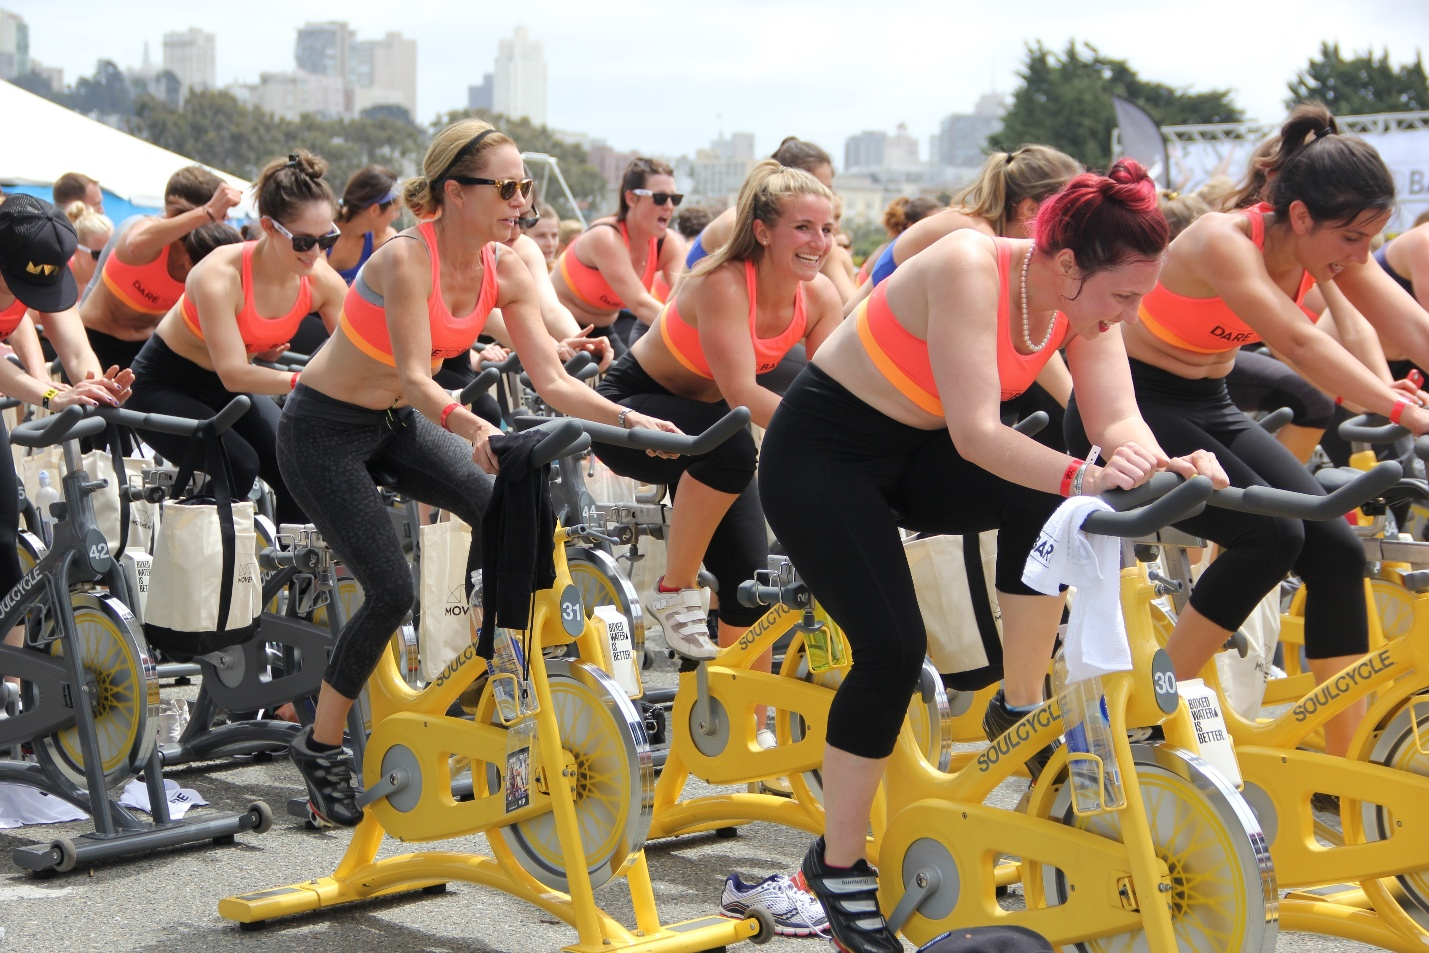 Joining Soulcycle